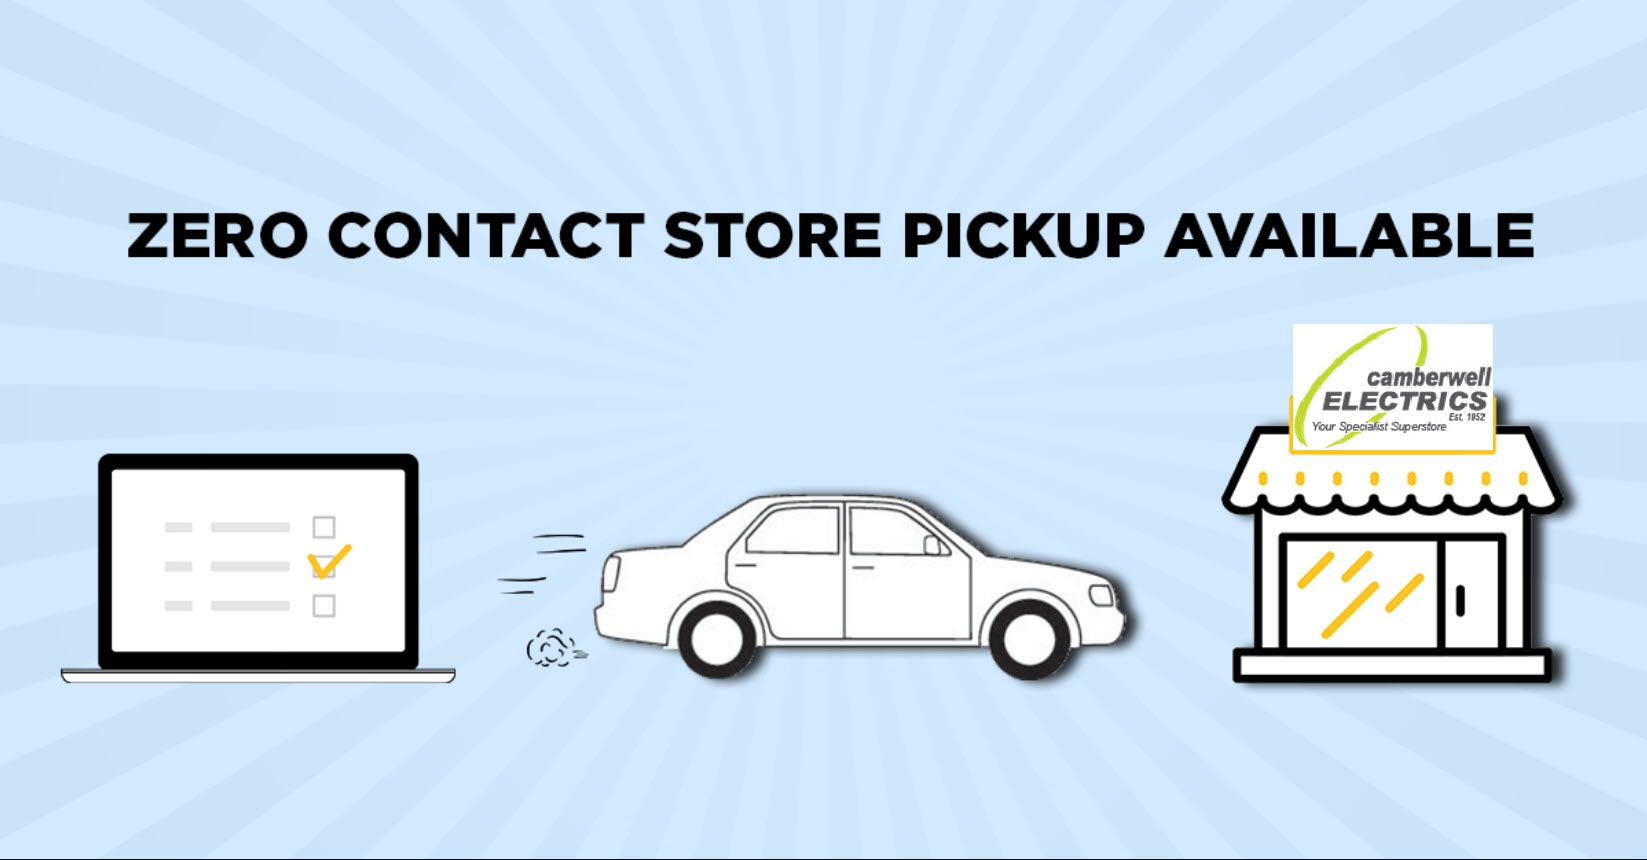 ZERO Contact Store Pickup Available